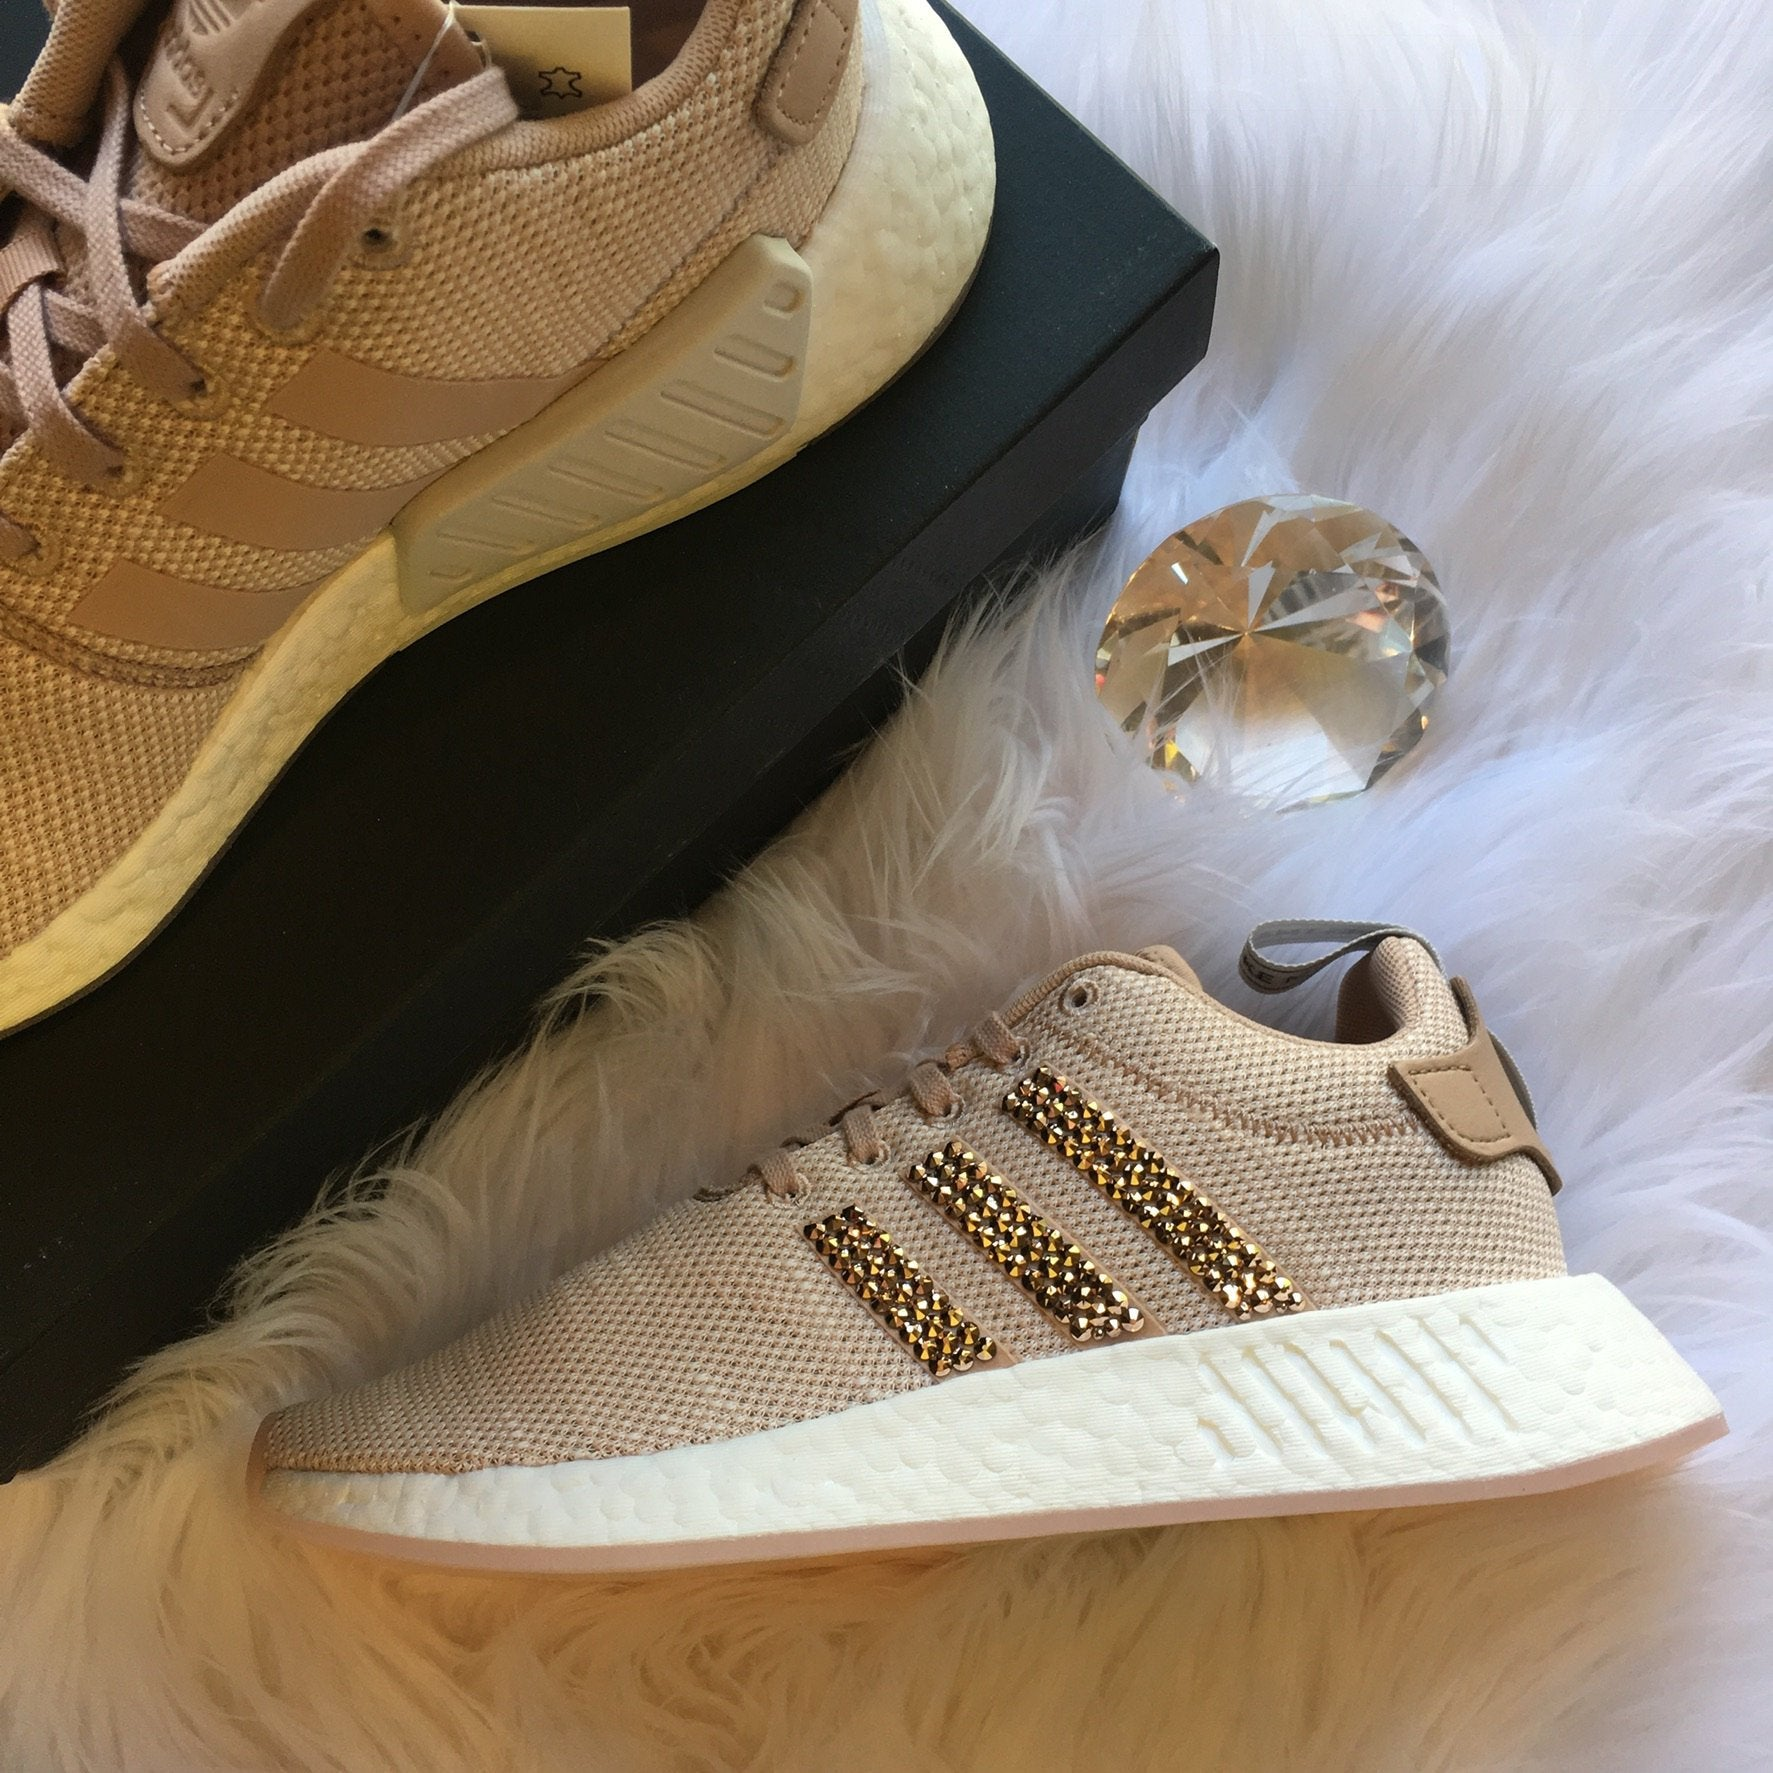 9f275258c ... ROSE GOLD Bling Adidas NMD with Swarovski Crystals - Bedazzled Women s  Originals NMD R2 Runner Casual Shoes ...